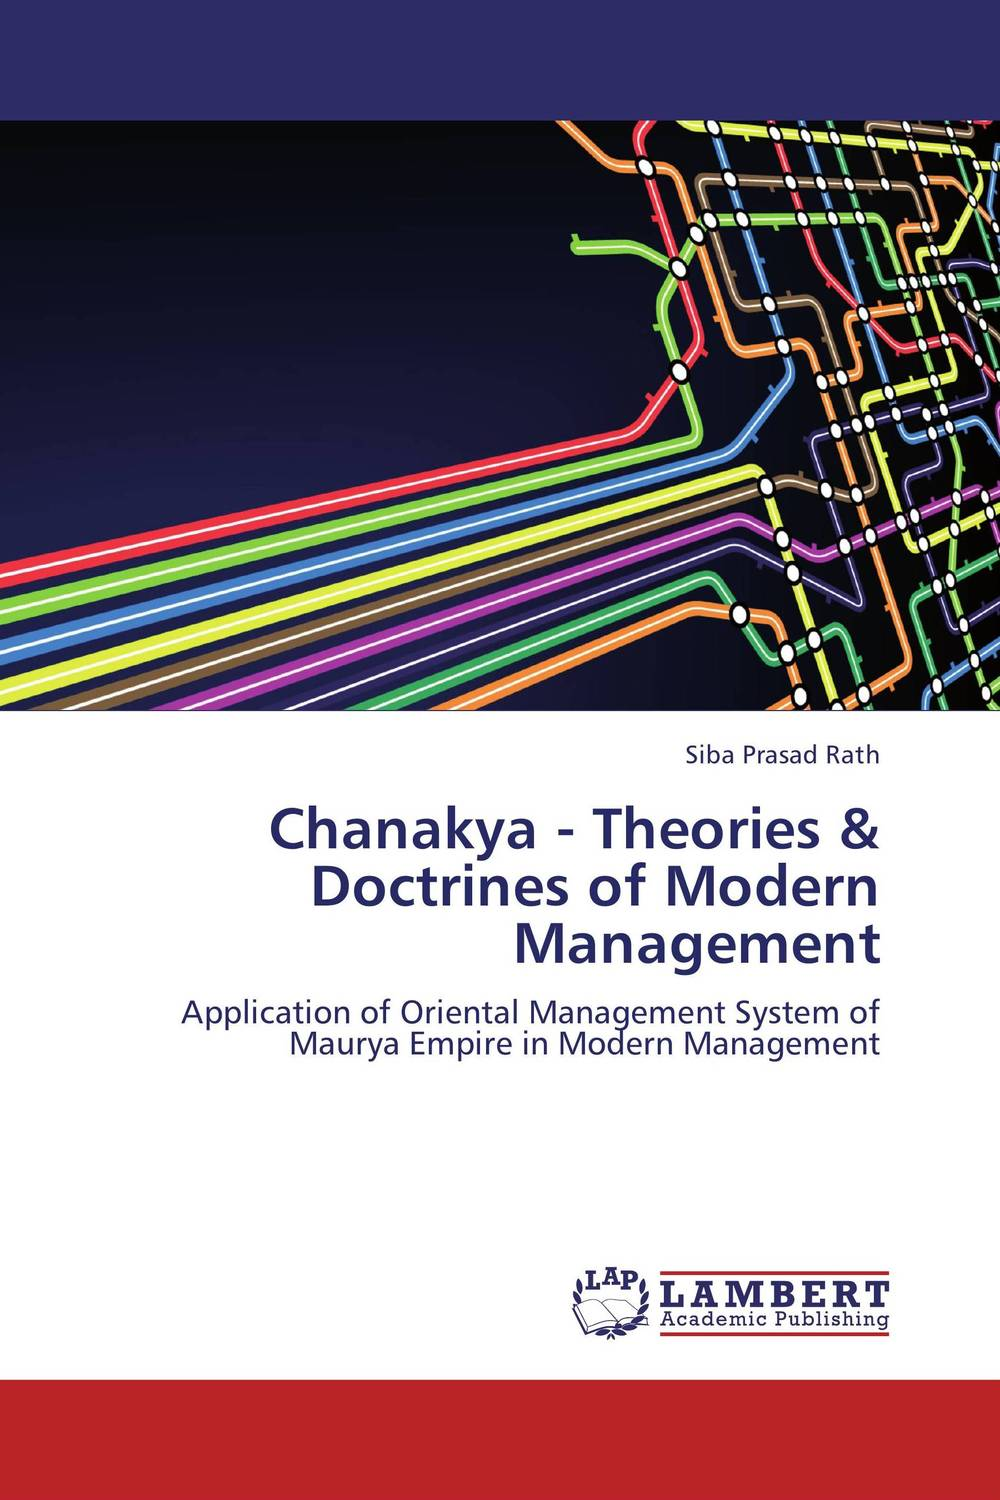 Chanakya - Theories & Doctrines of Modern Management corporate governance and firm value